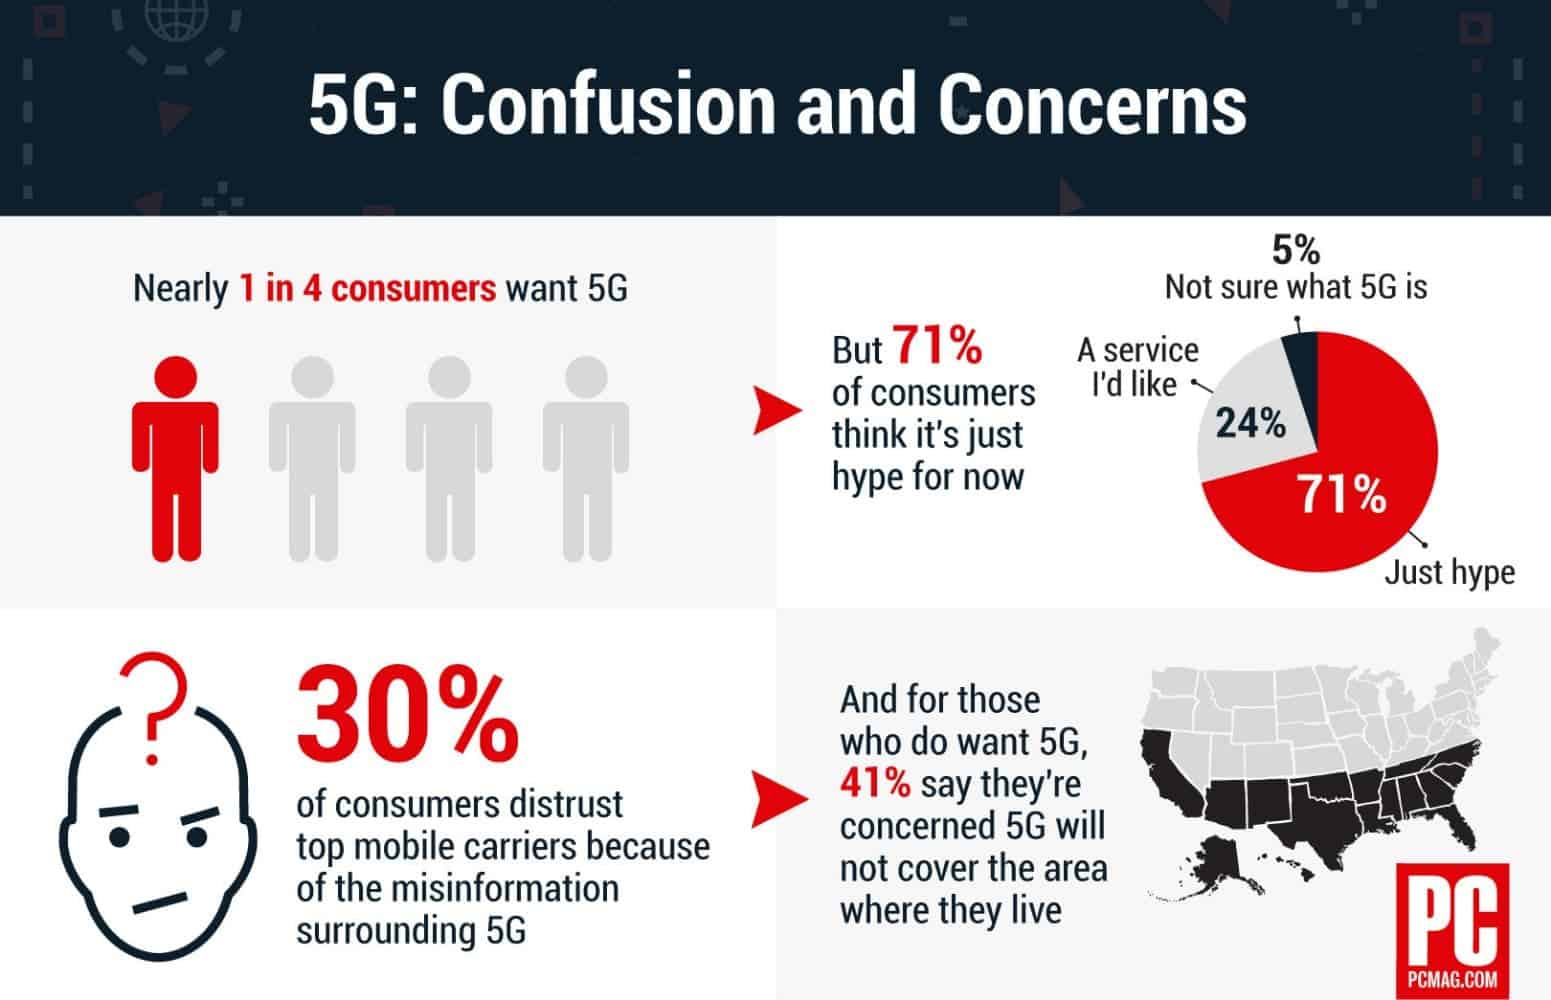 640696 the why axis 5g confusion and concerns from PCMag